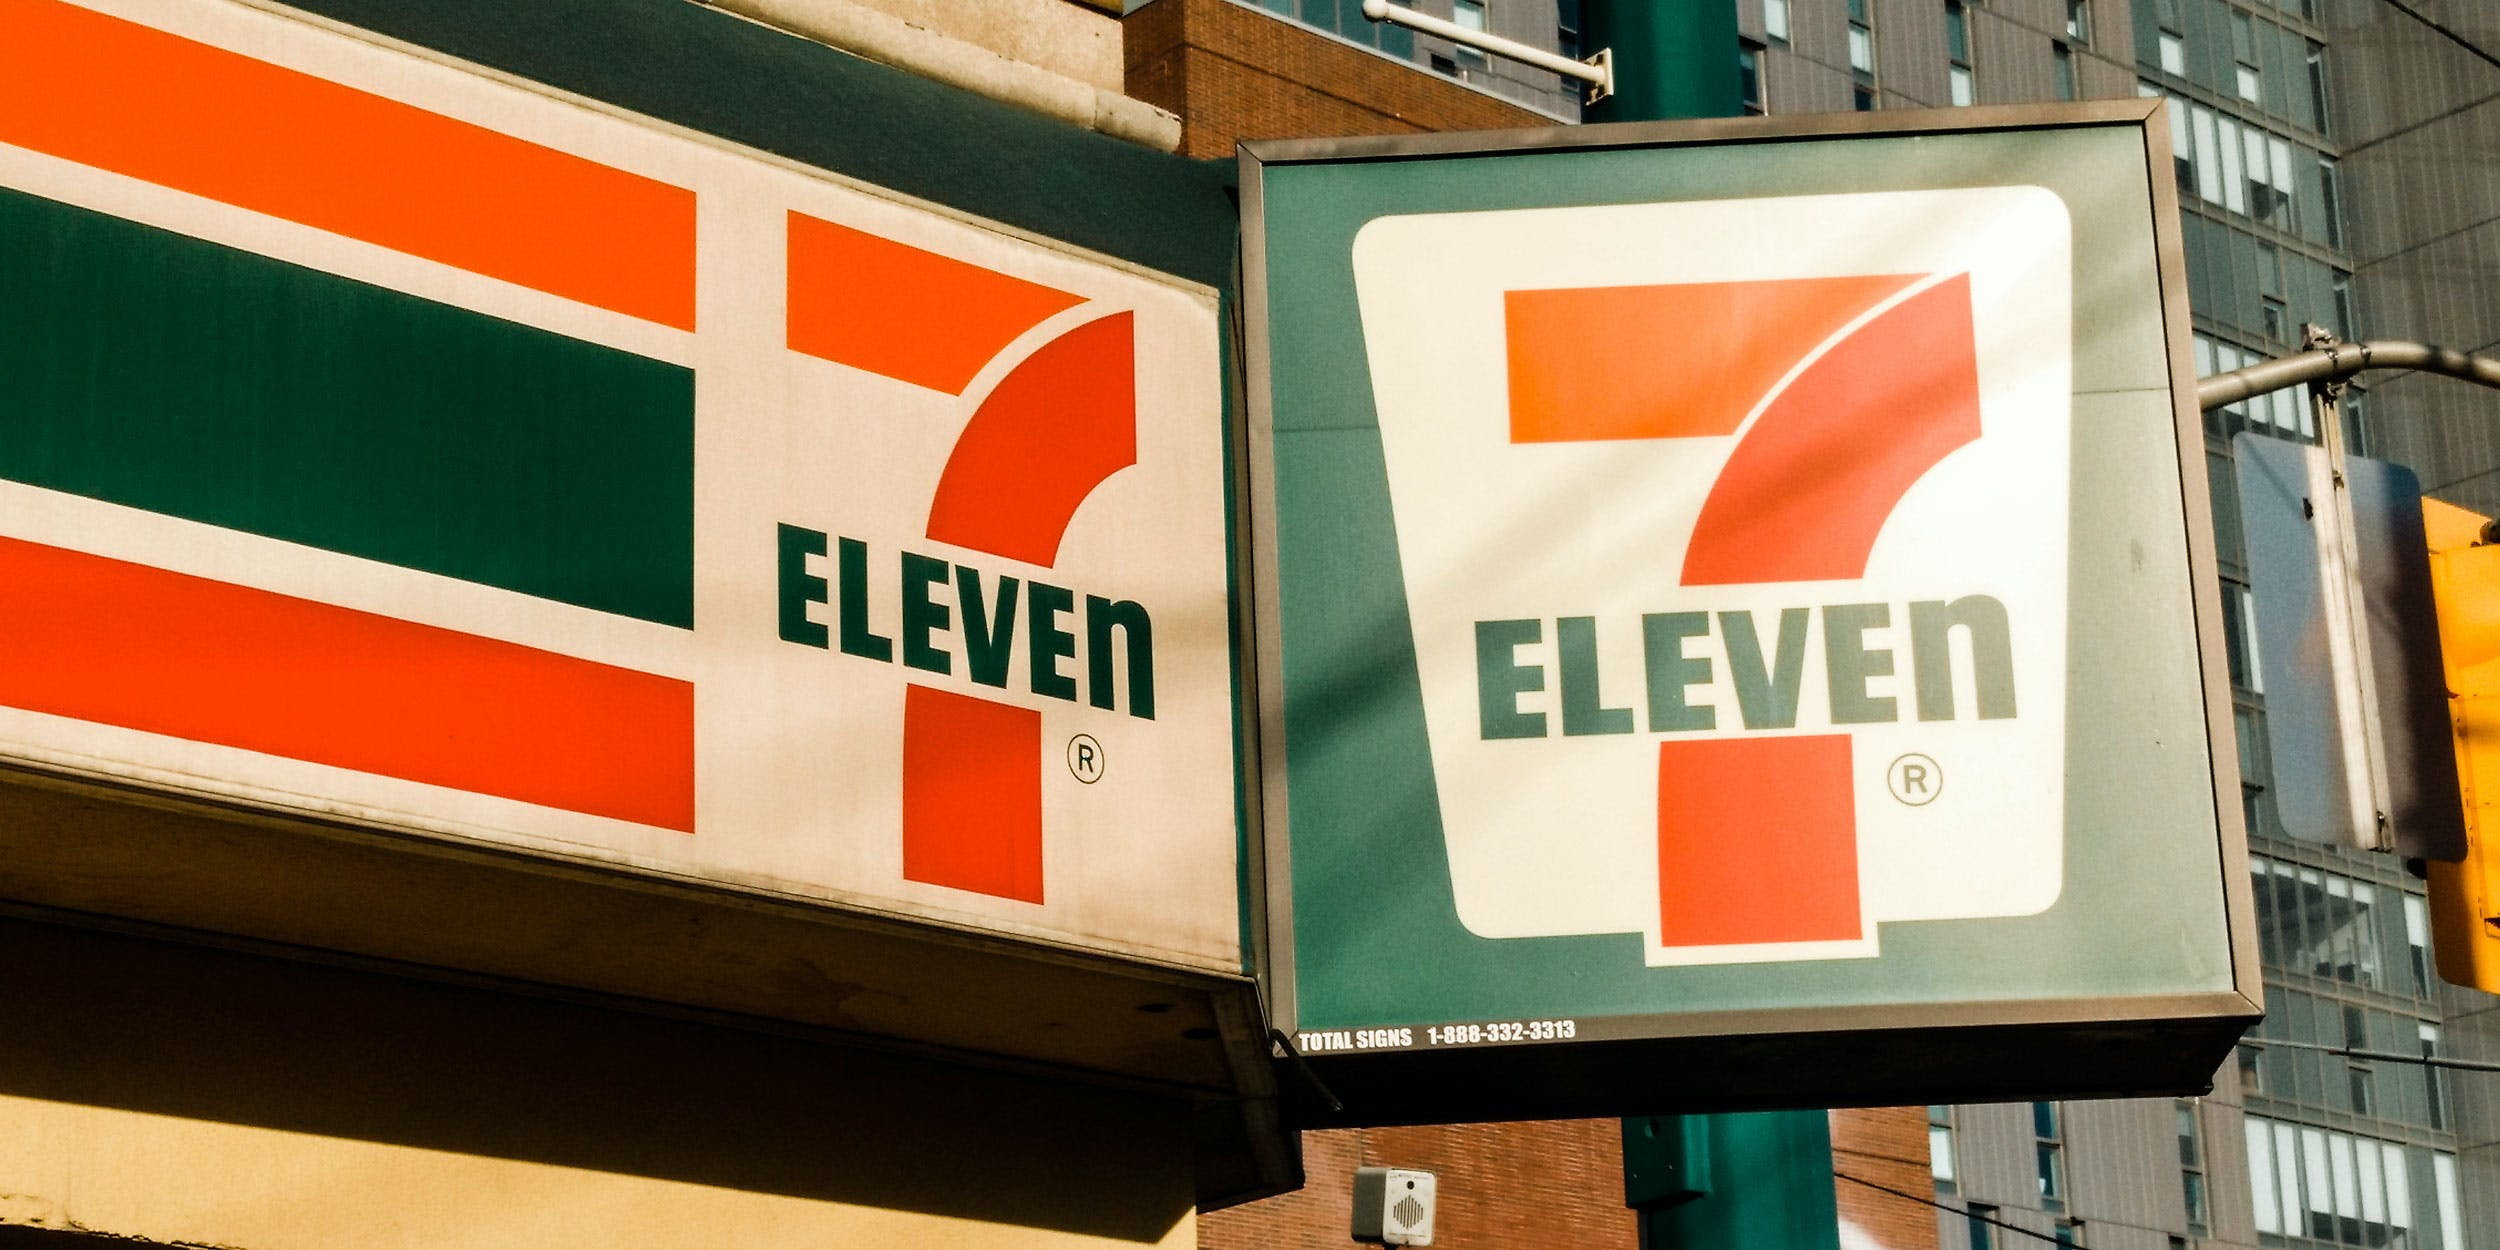 7-Eleven store denies rumors it will sell CBD oils